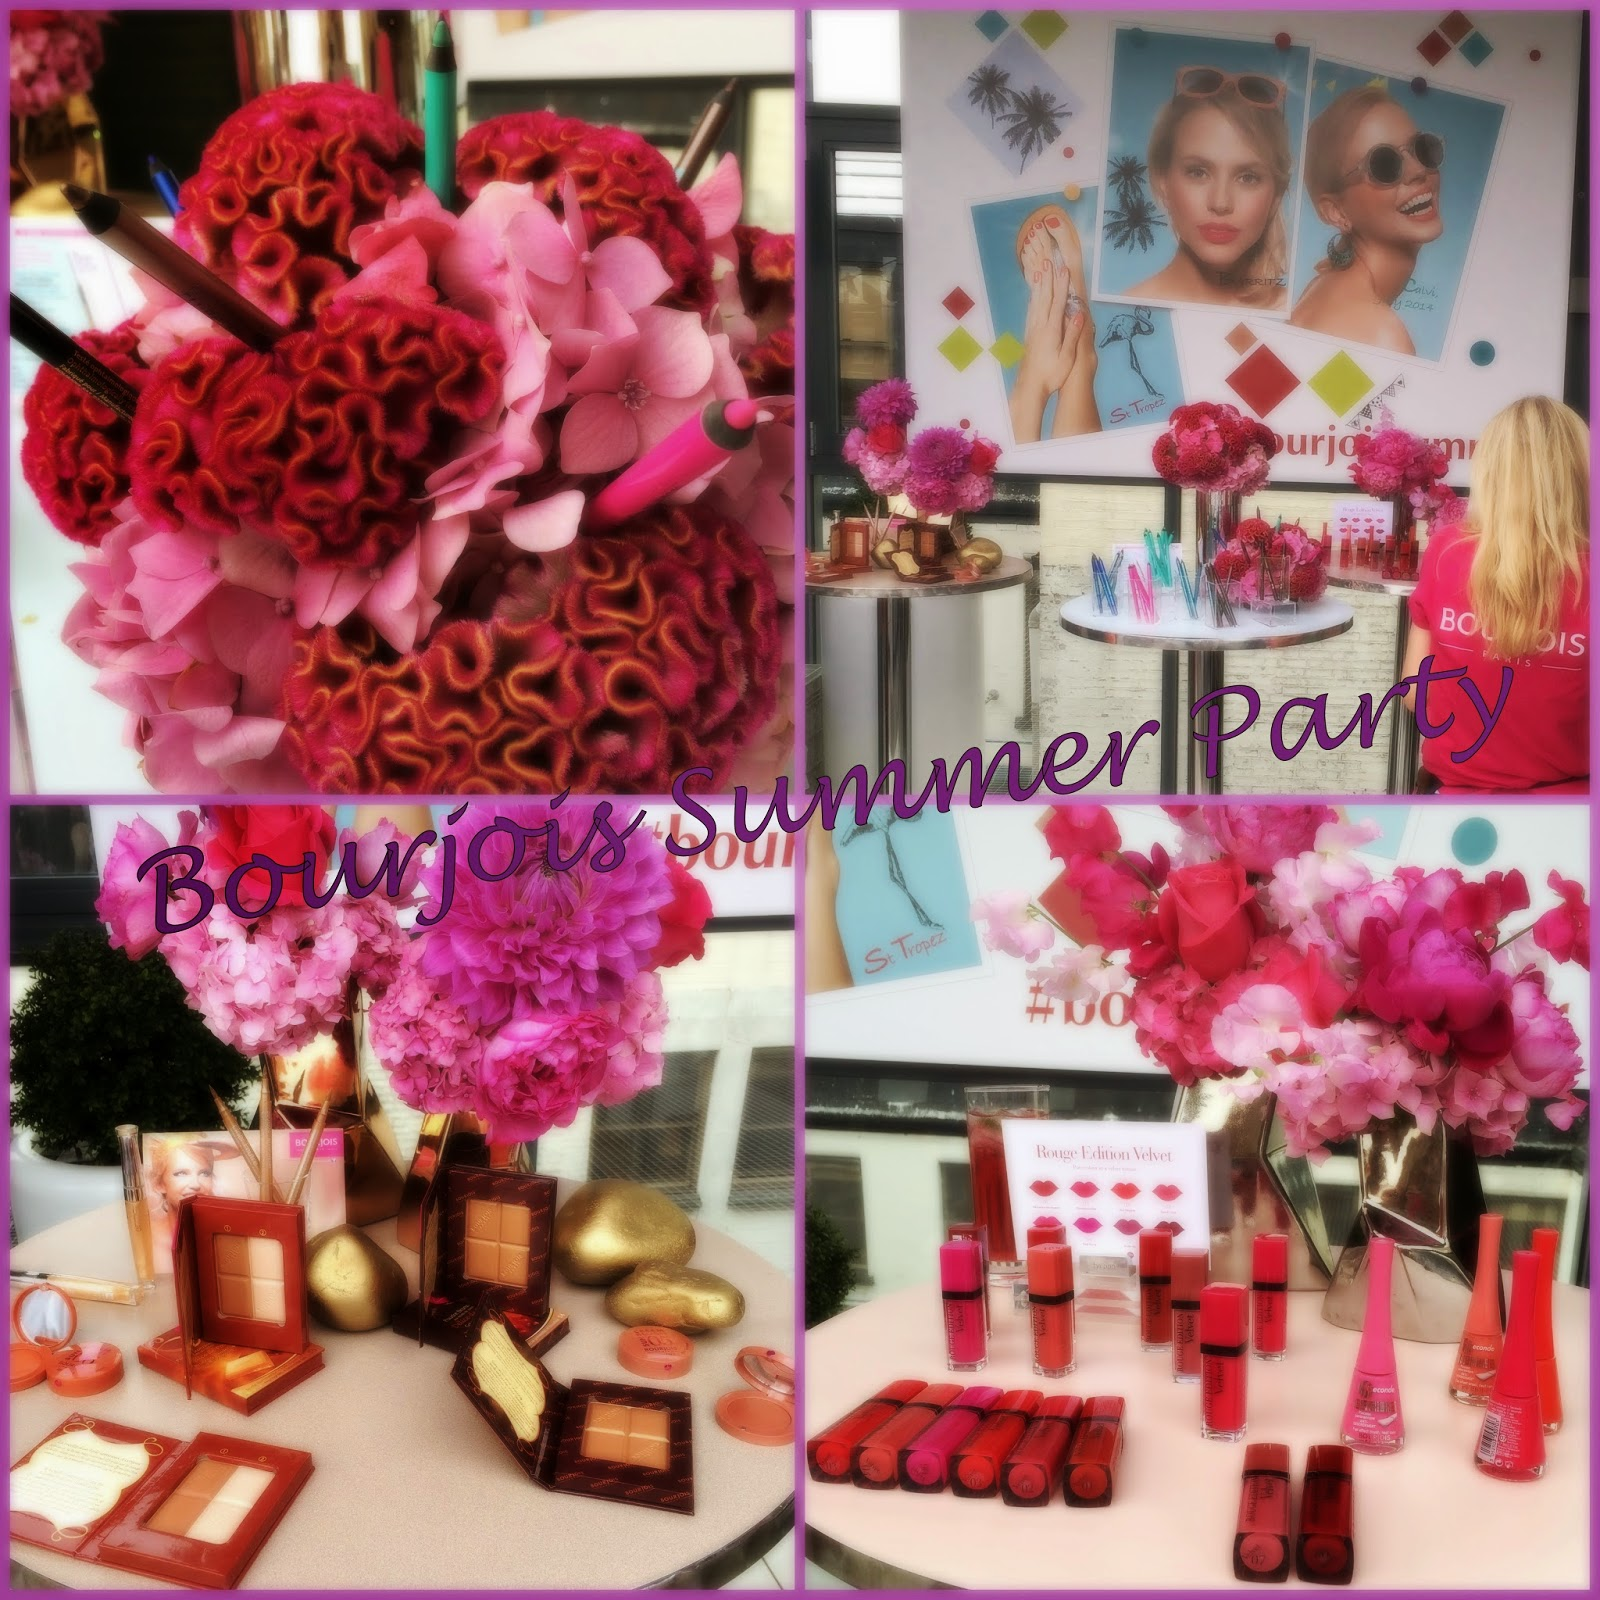 bourjois-summer-party-event-2014